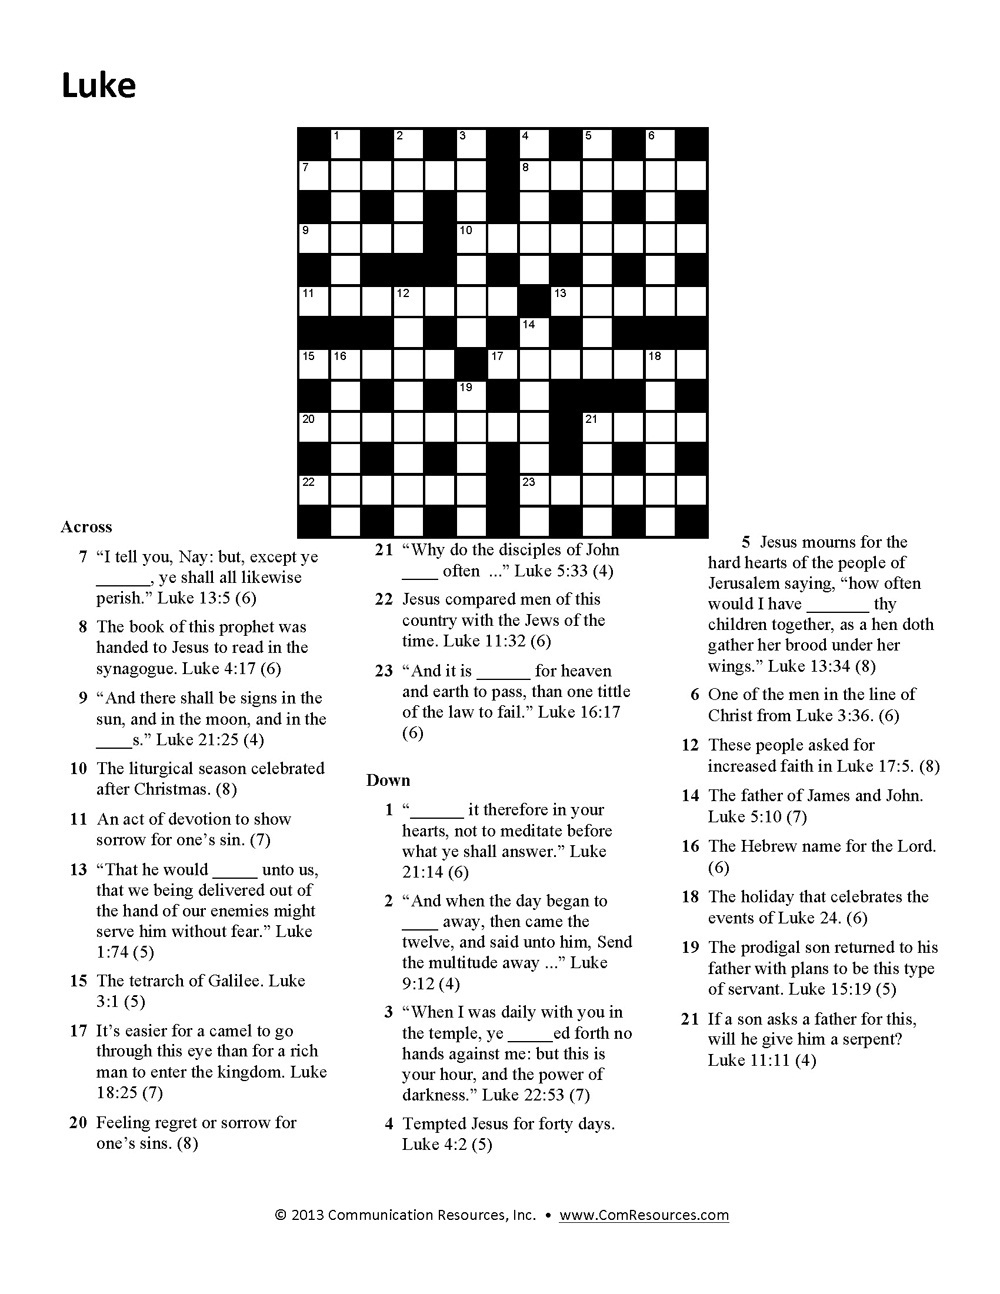 15 Fun Bible Crossword Puzzles | Kittybabylove - Religious Crossword Puzzles Printable